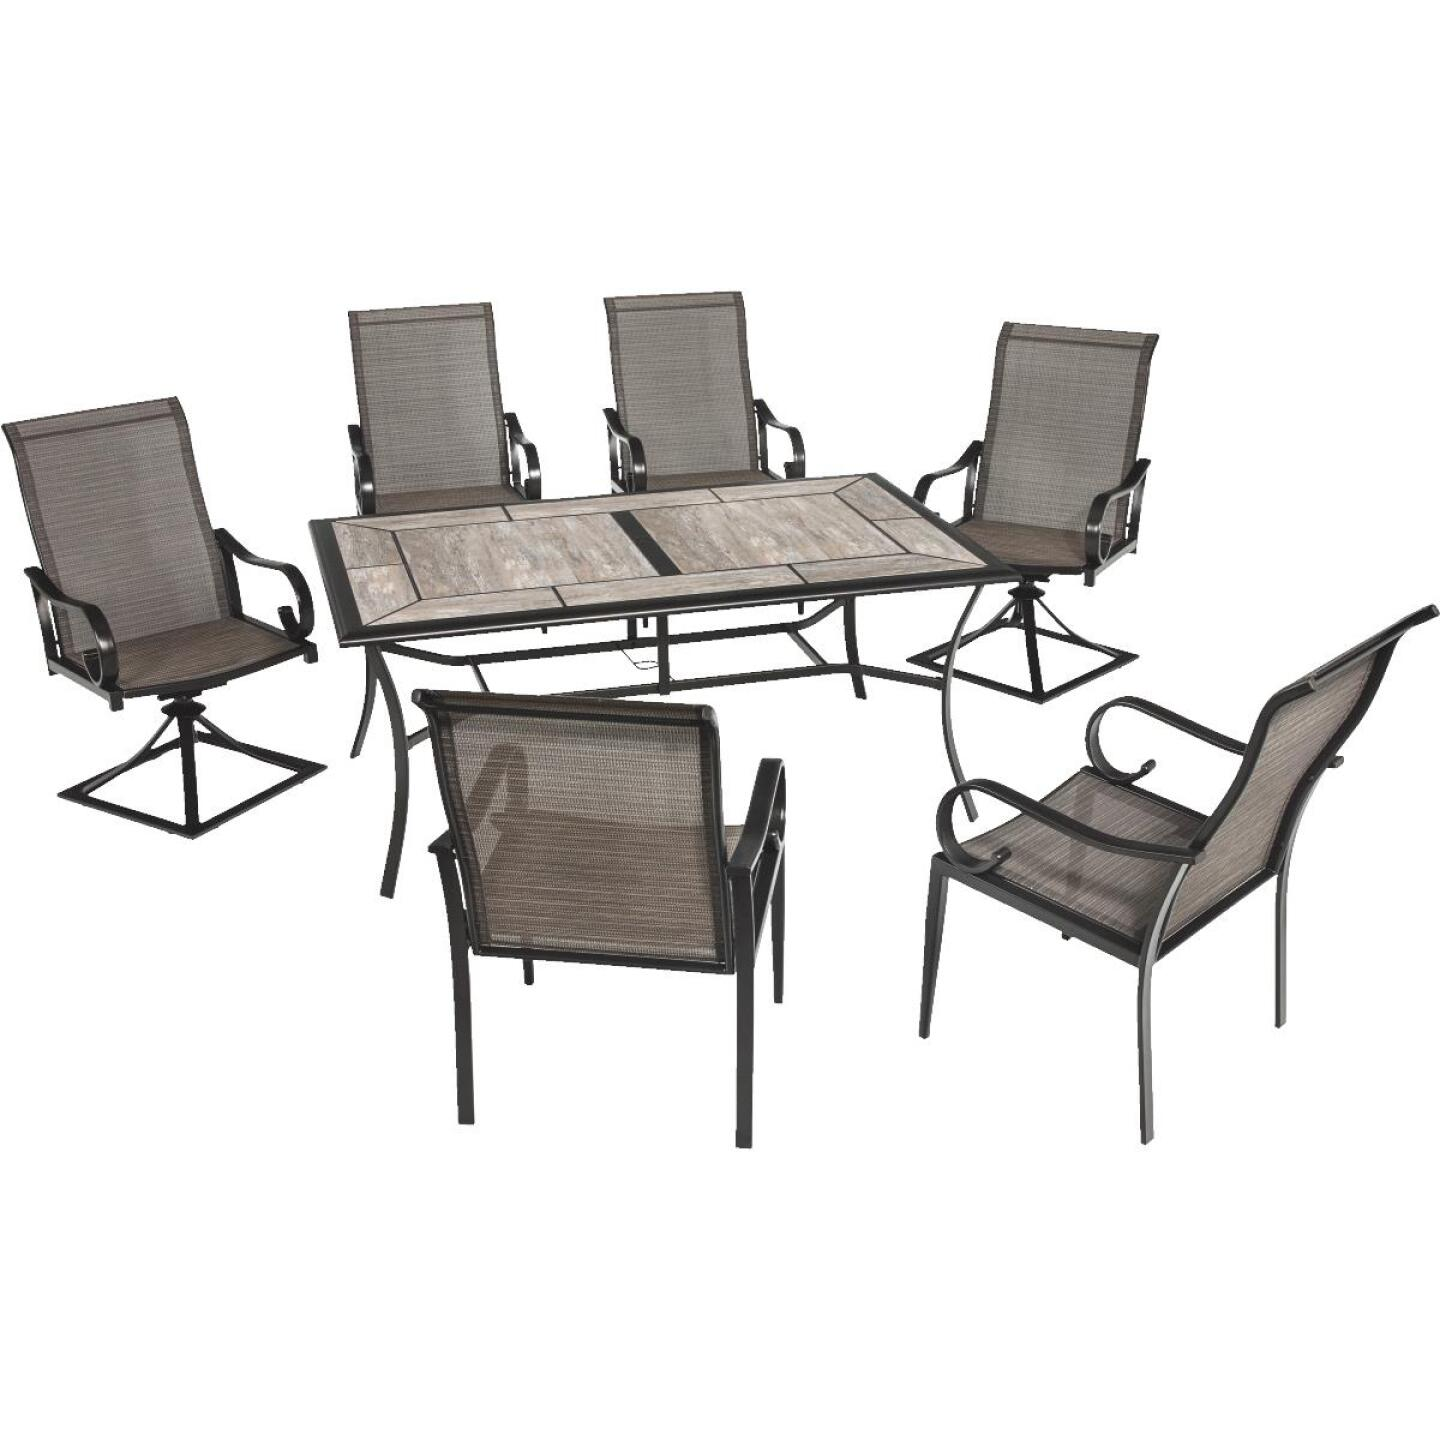 Outdoor Expressions Berkshire 7-Piece Dining Set Image 74